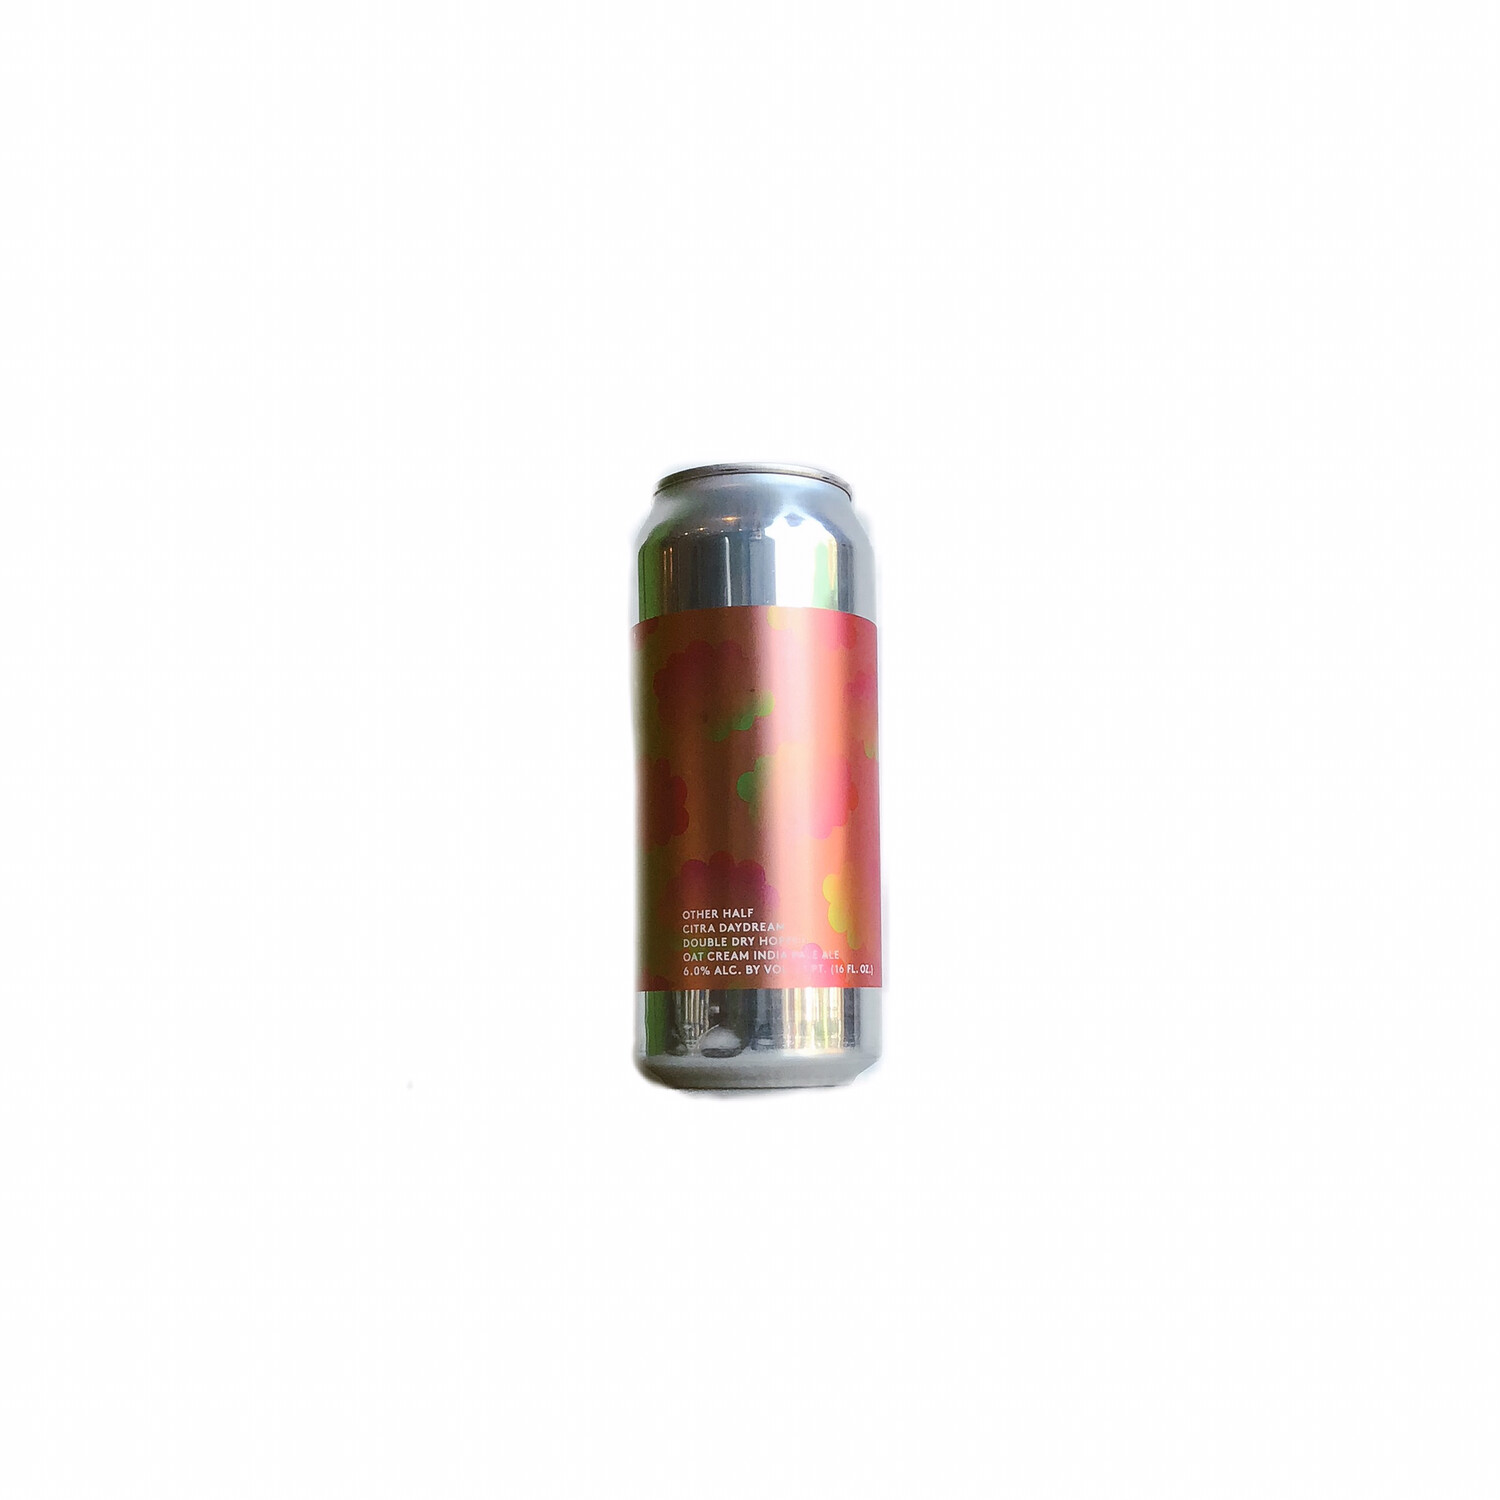 (LIMIT 2) Other Half Citra Daydream